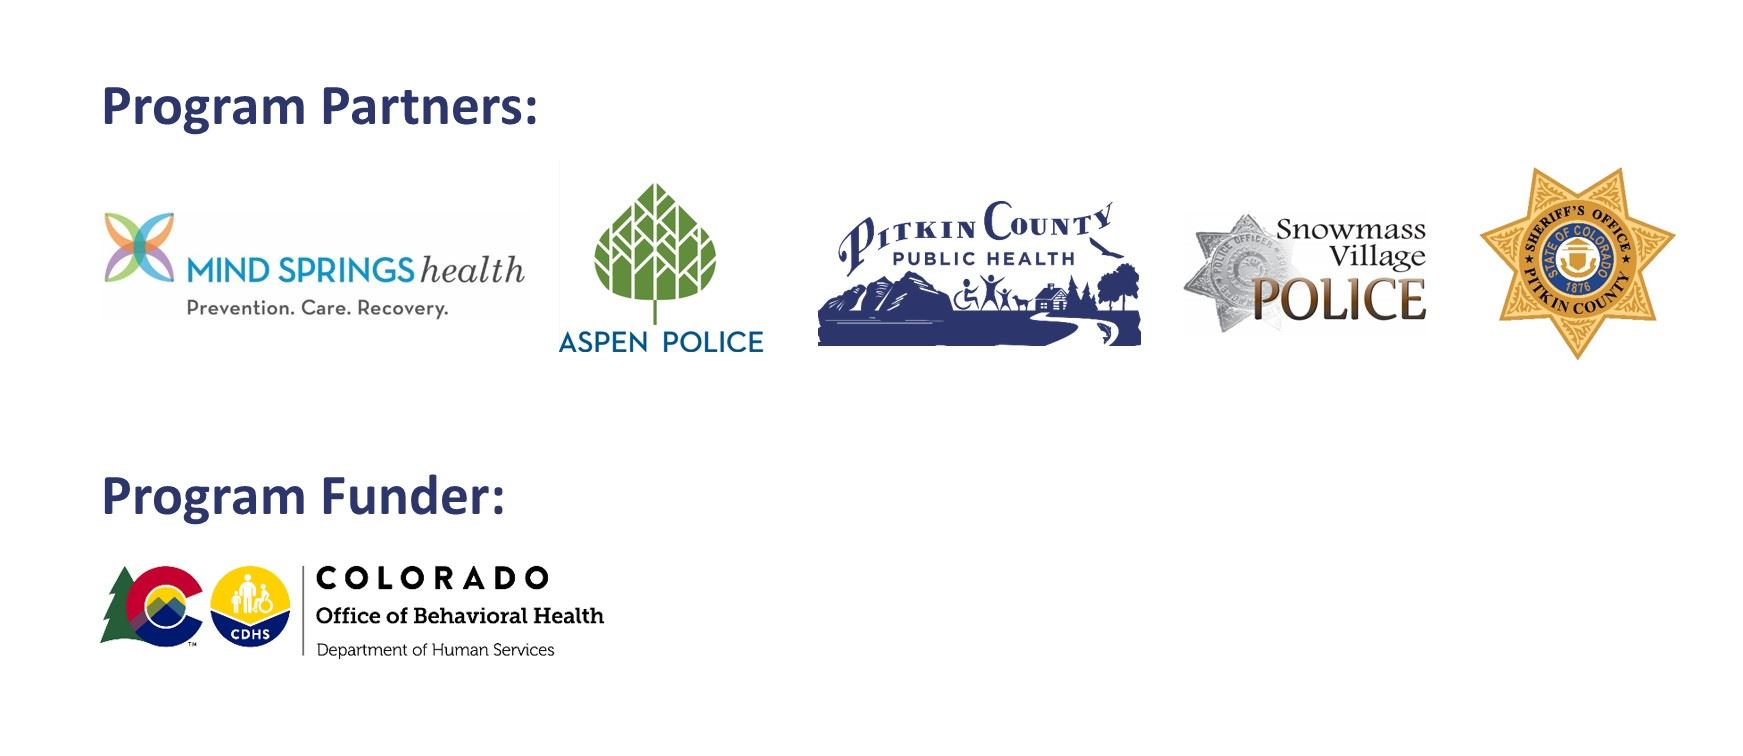 Program Partner Logos: Mind Springs Health, Apsen Police Department, Pitkin County Public Health, Sn